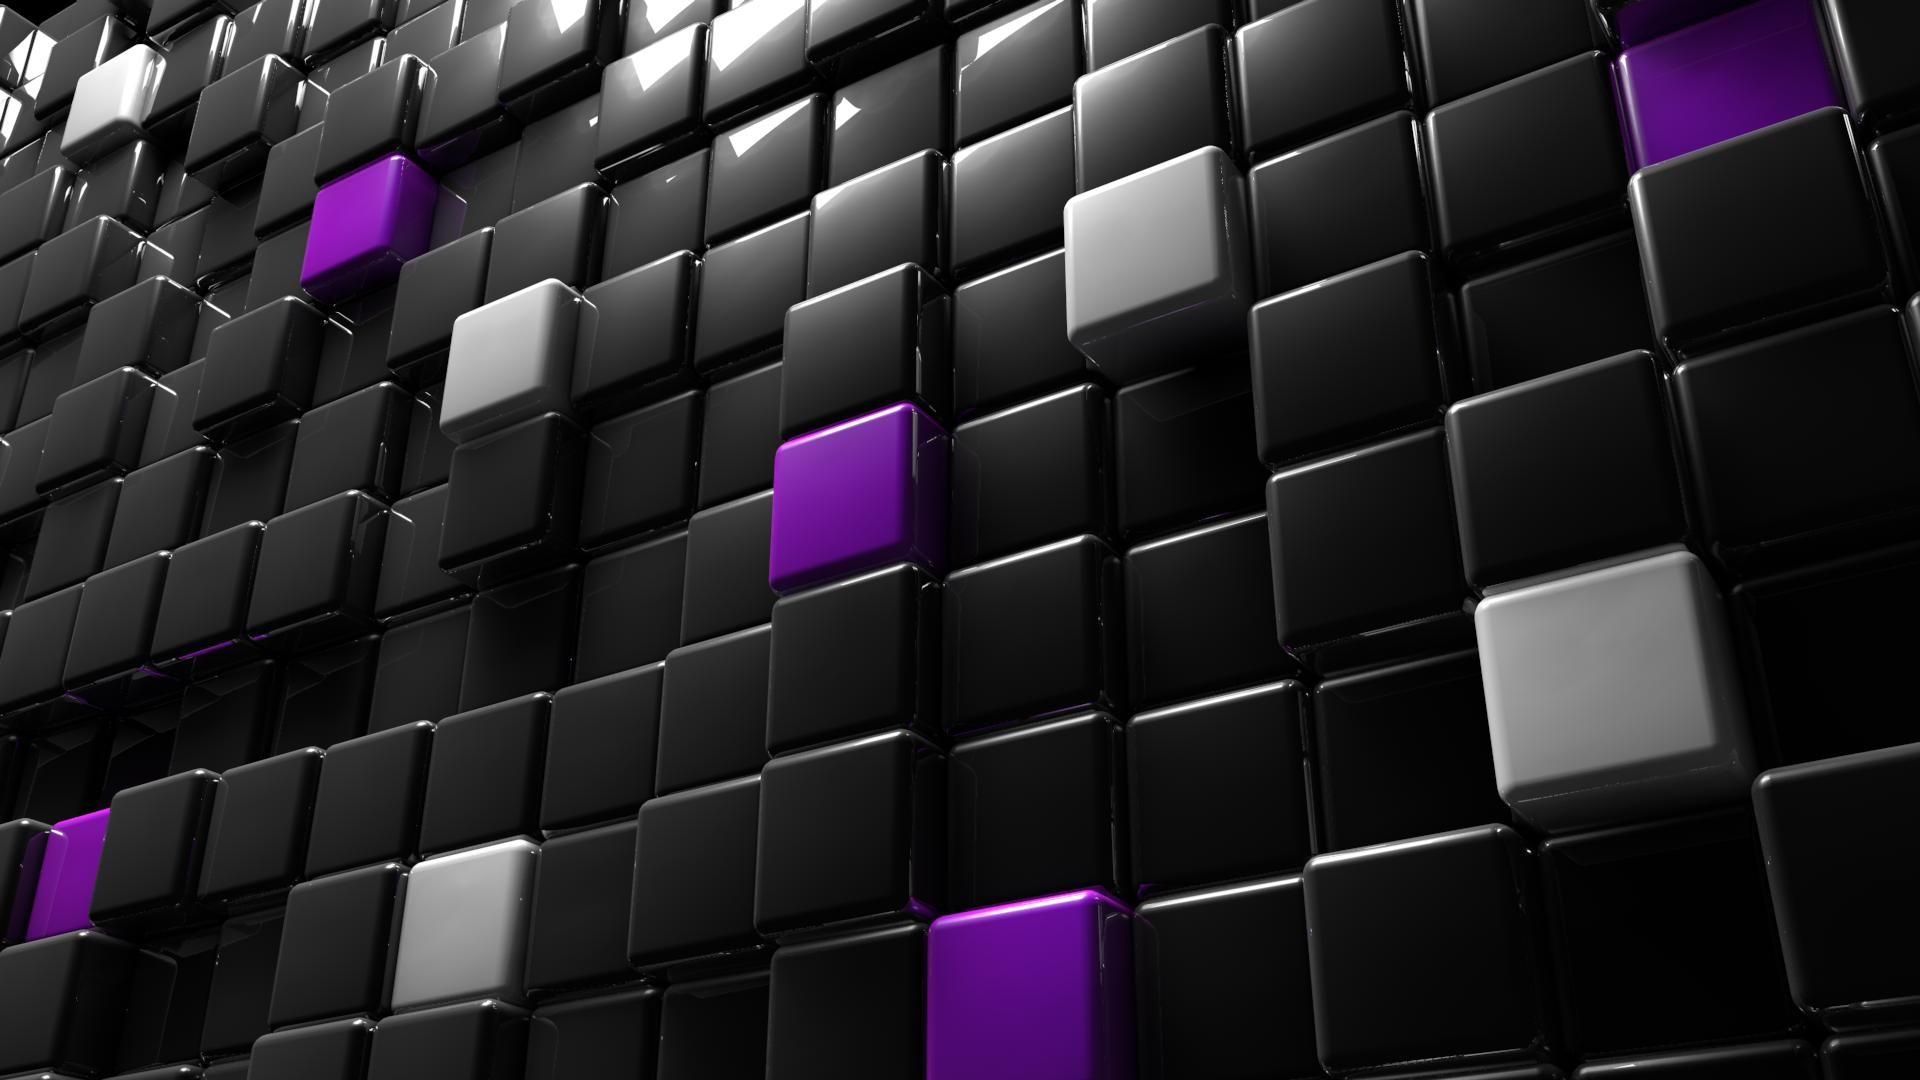 3d abstract cube hd awesome wallpapers (high resolution) - all hd